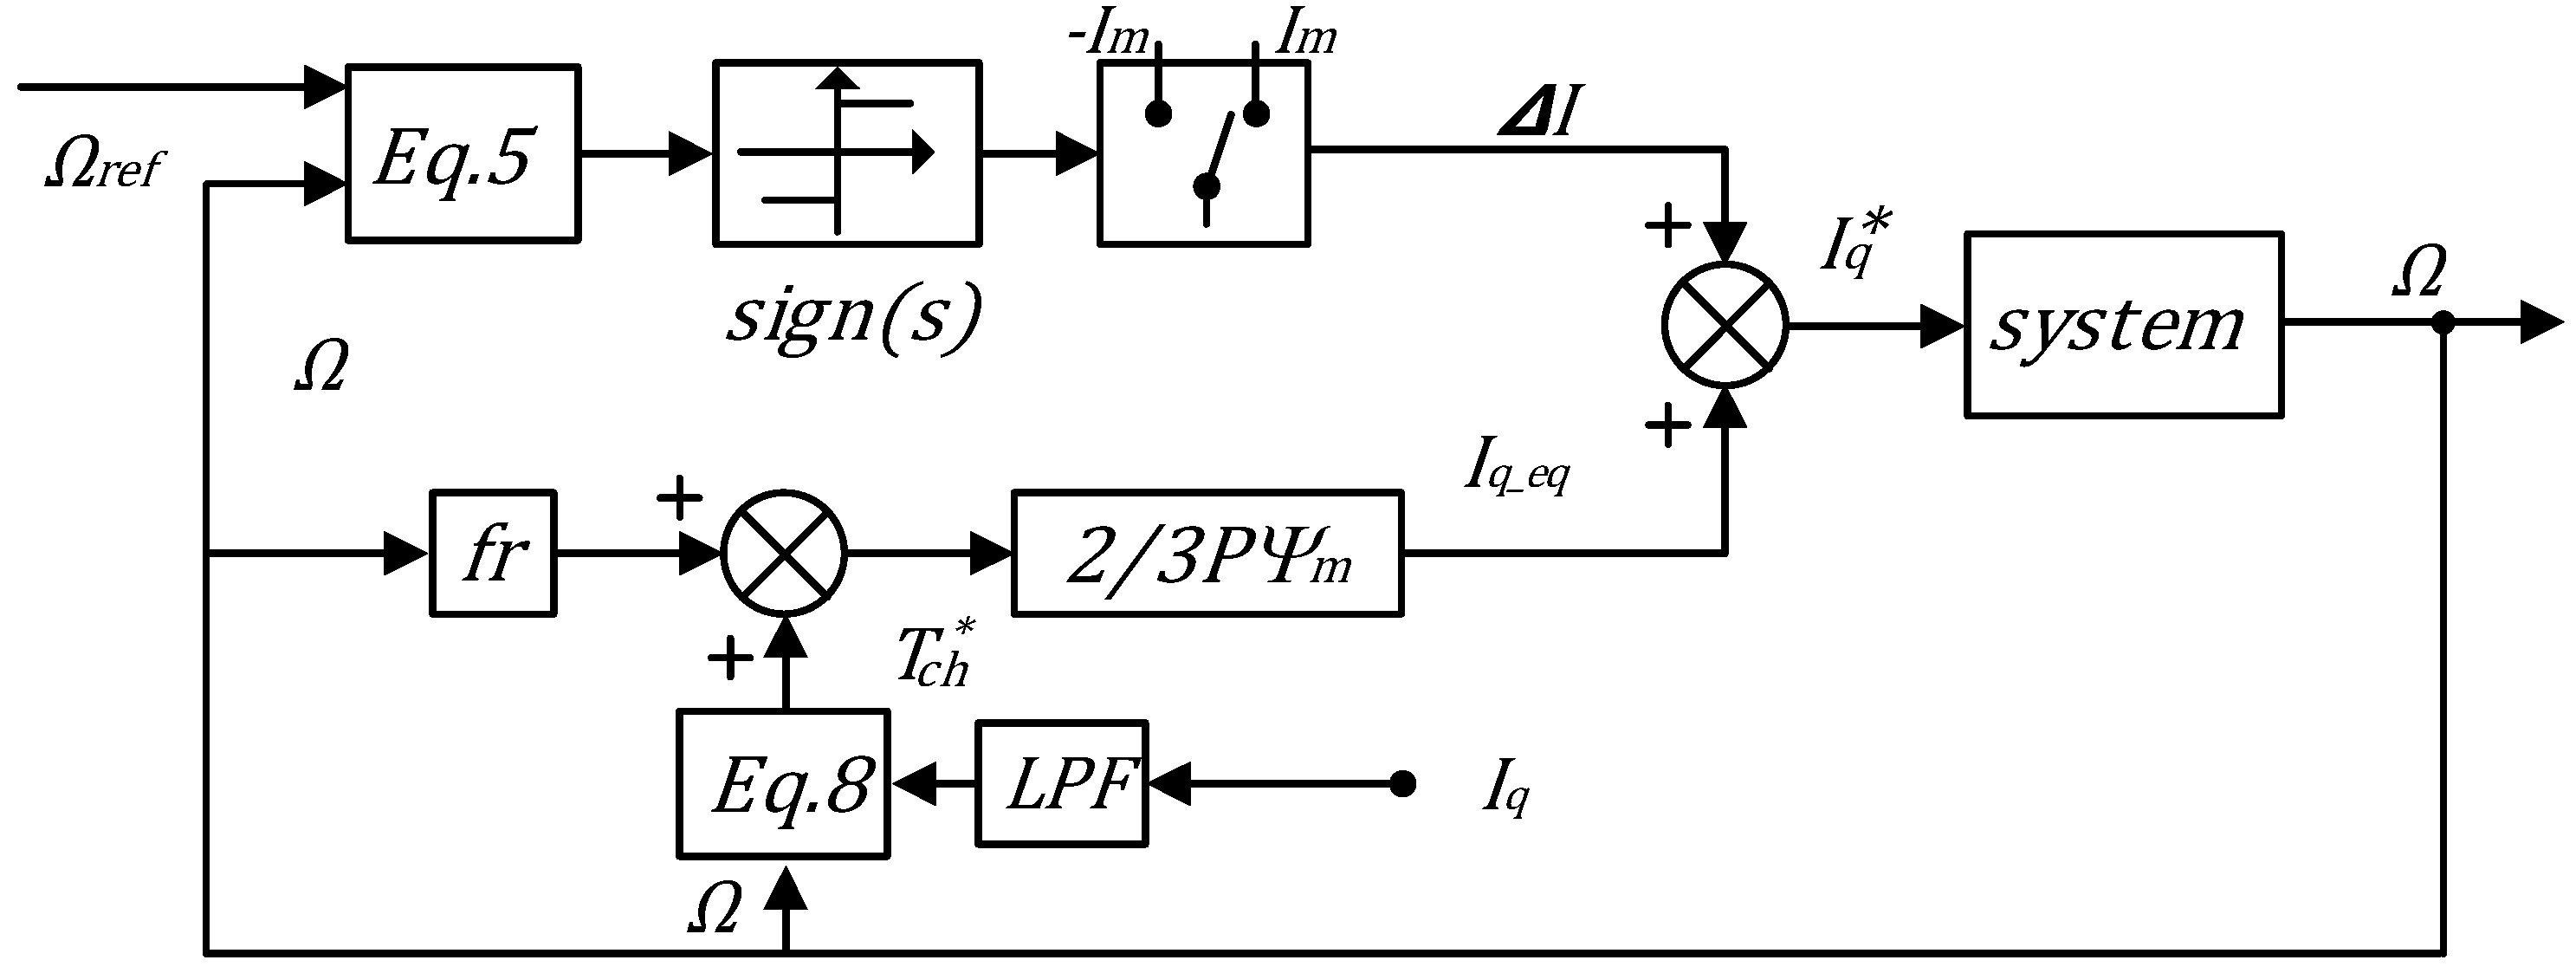 Information | Free Full-Text | Sliding-Mode Speed Control of